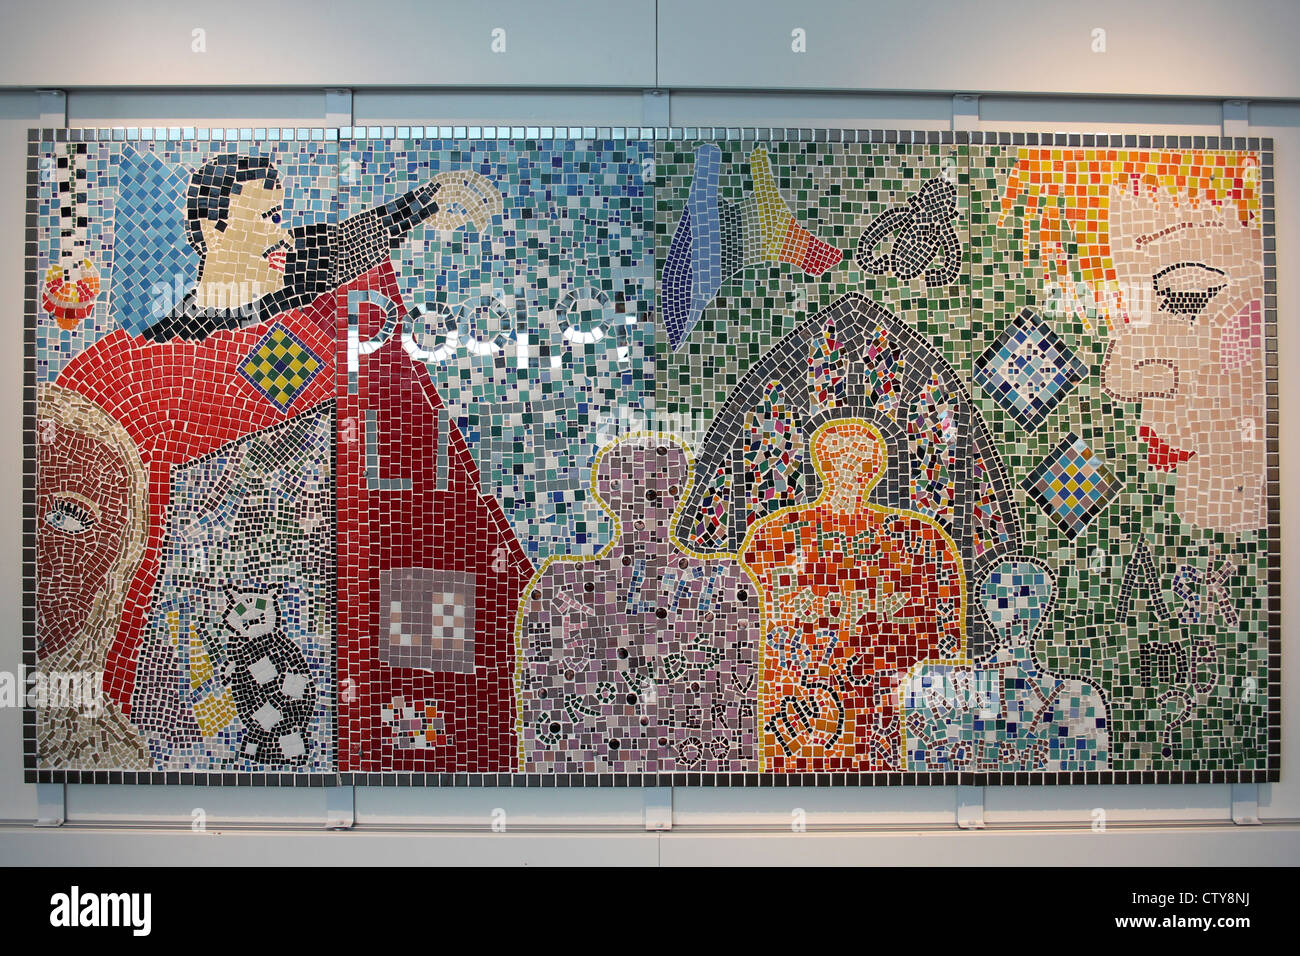 Museum Of Liverpool Mosaic - Stock Image